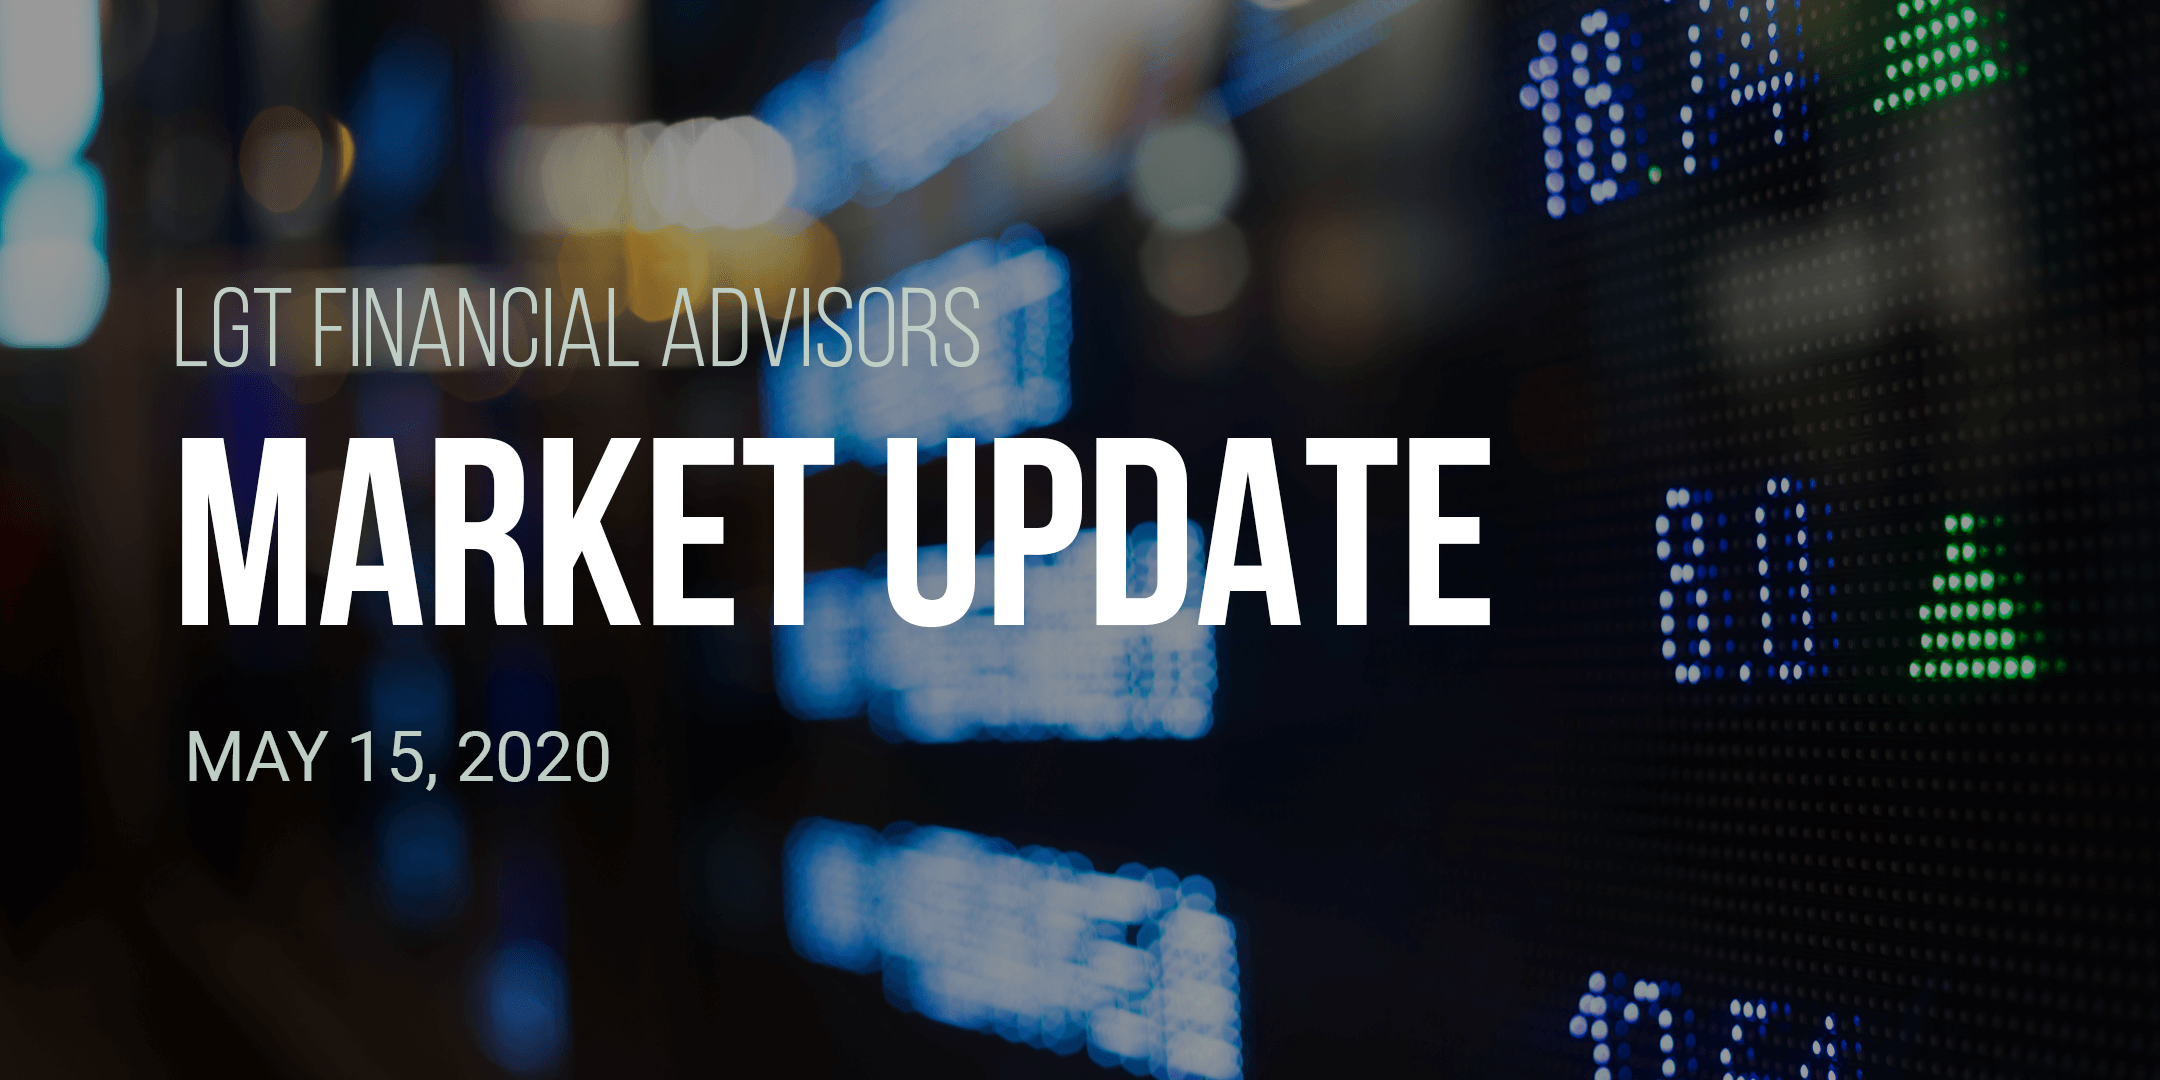 FA Market Update - May 15, 2020